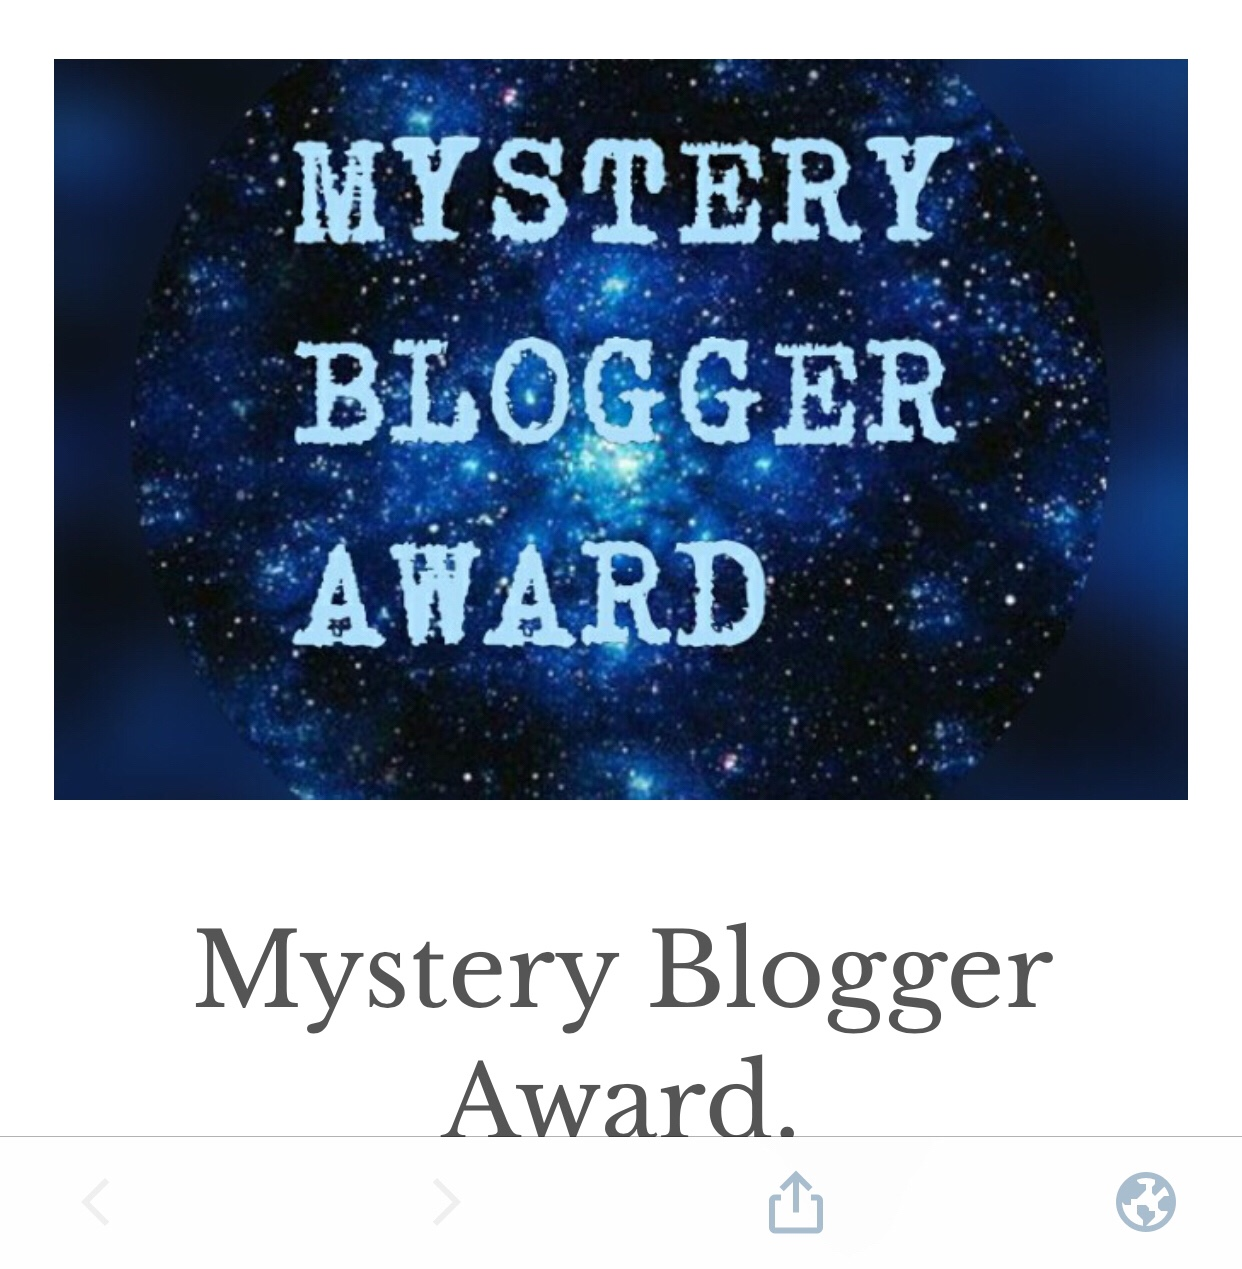 Nominated For Mystery Blogger Award(5th)